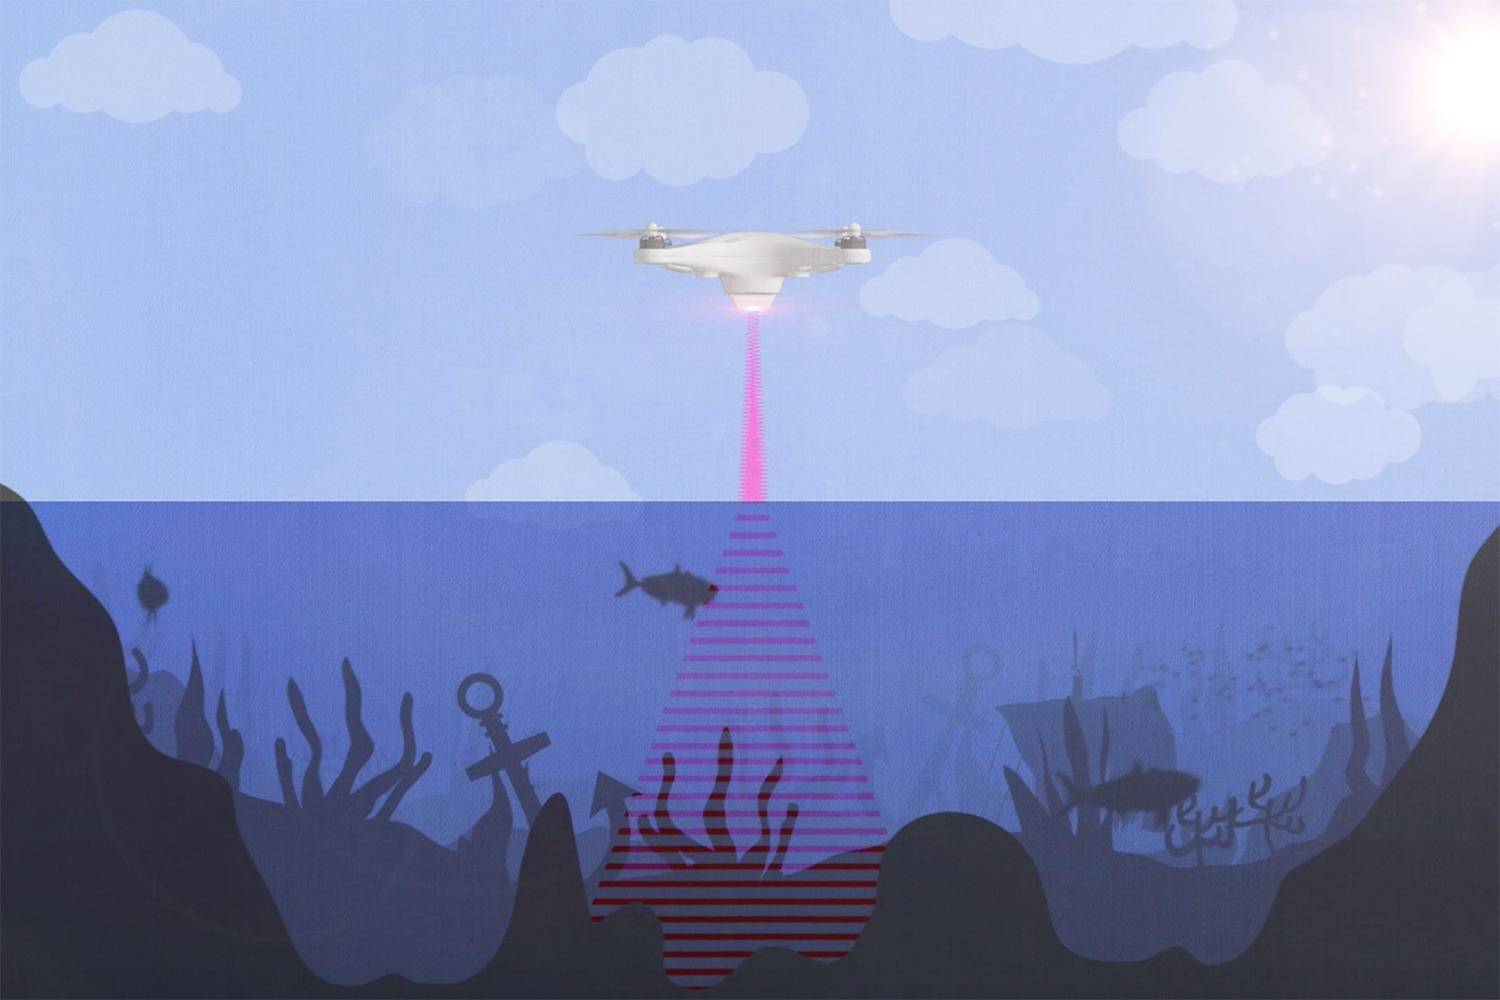 New Photoacoustic Airborne Sonar System Helps Image Underwater Objects